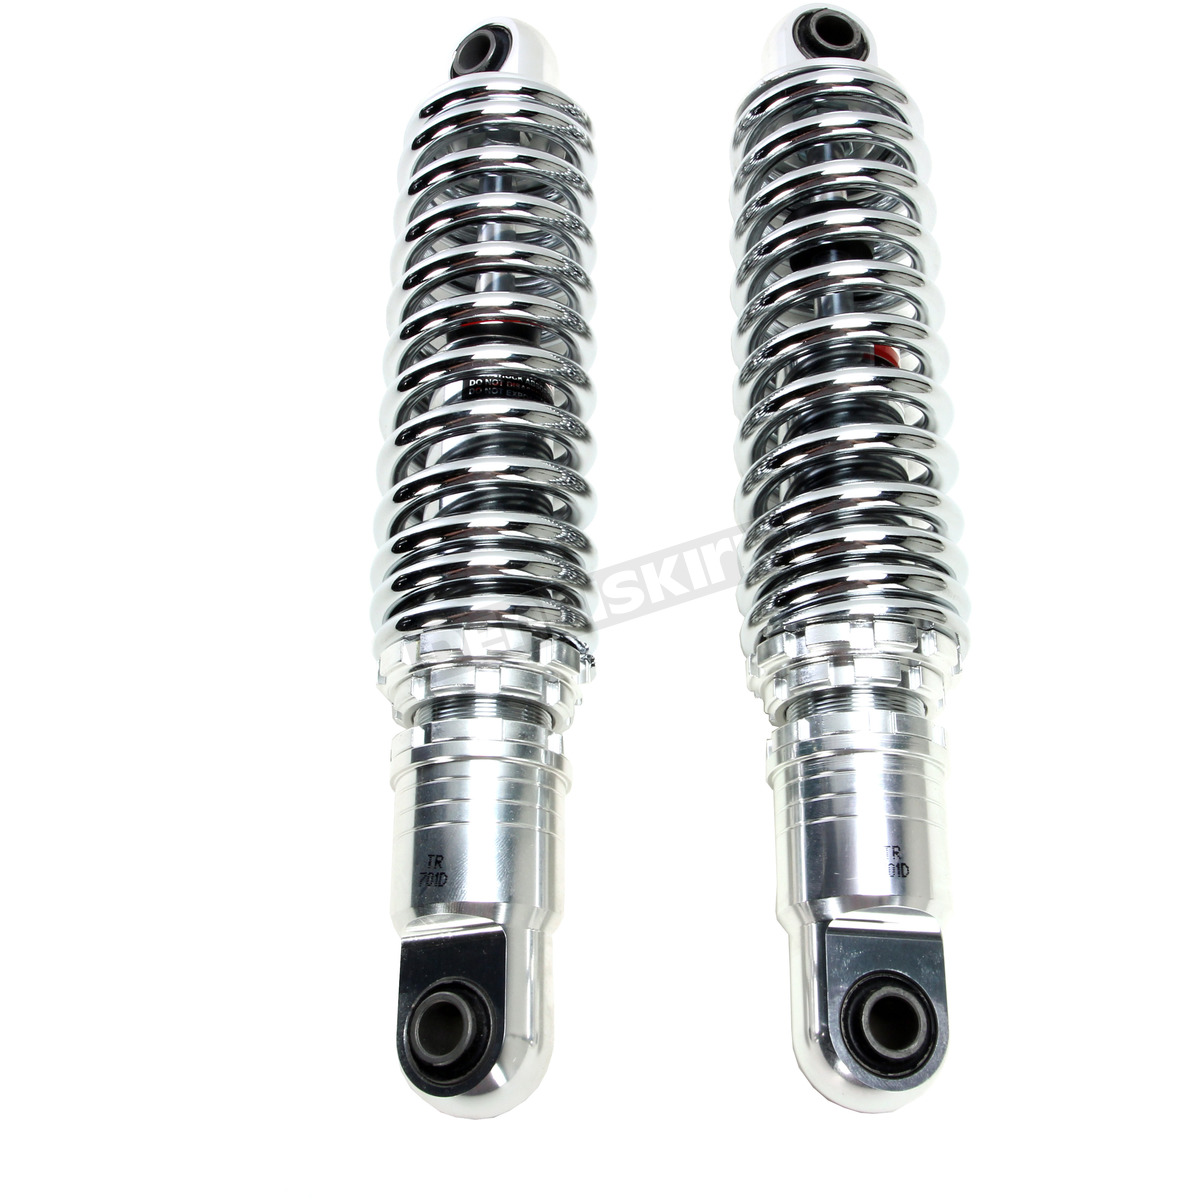 13 in  Chrome Ride-Height Adjustable Shocks - 1310-1201